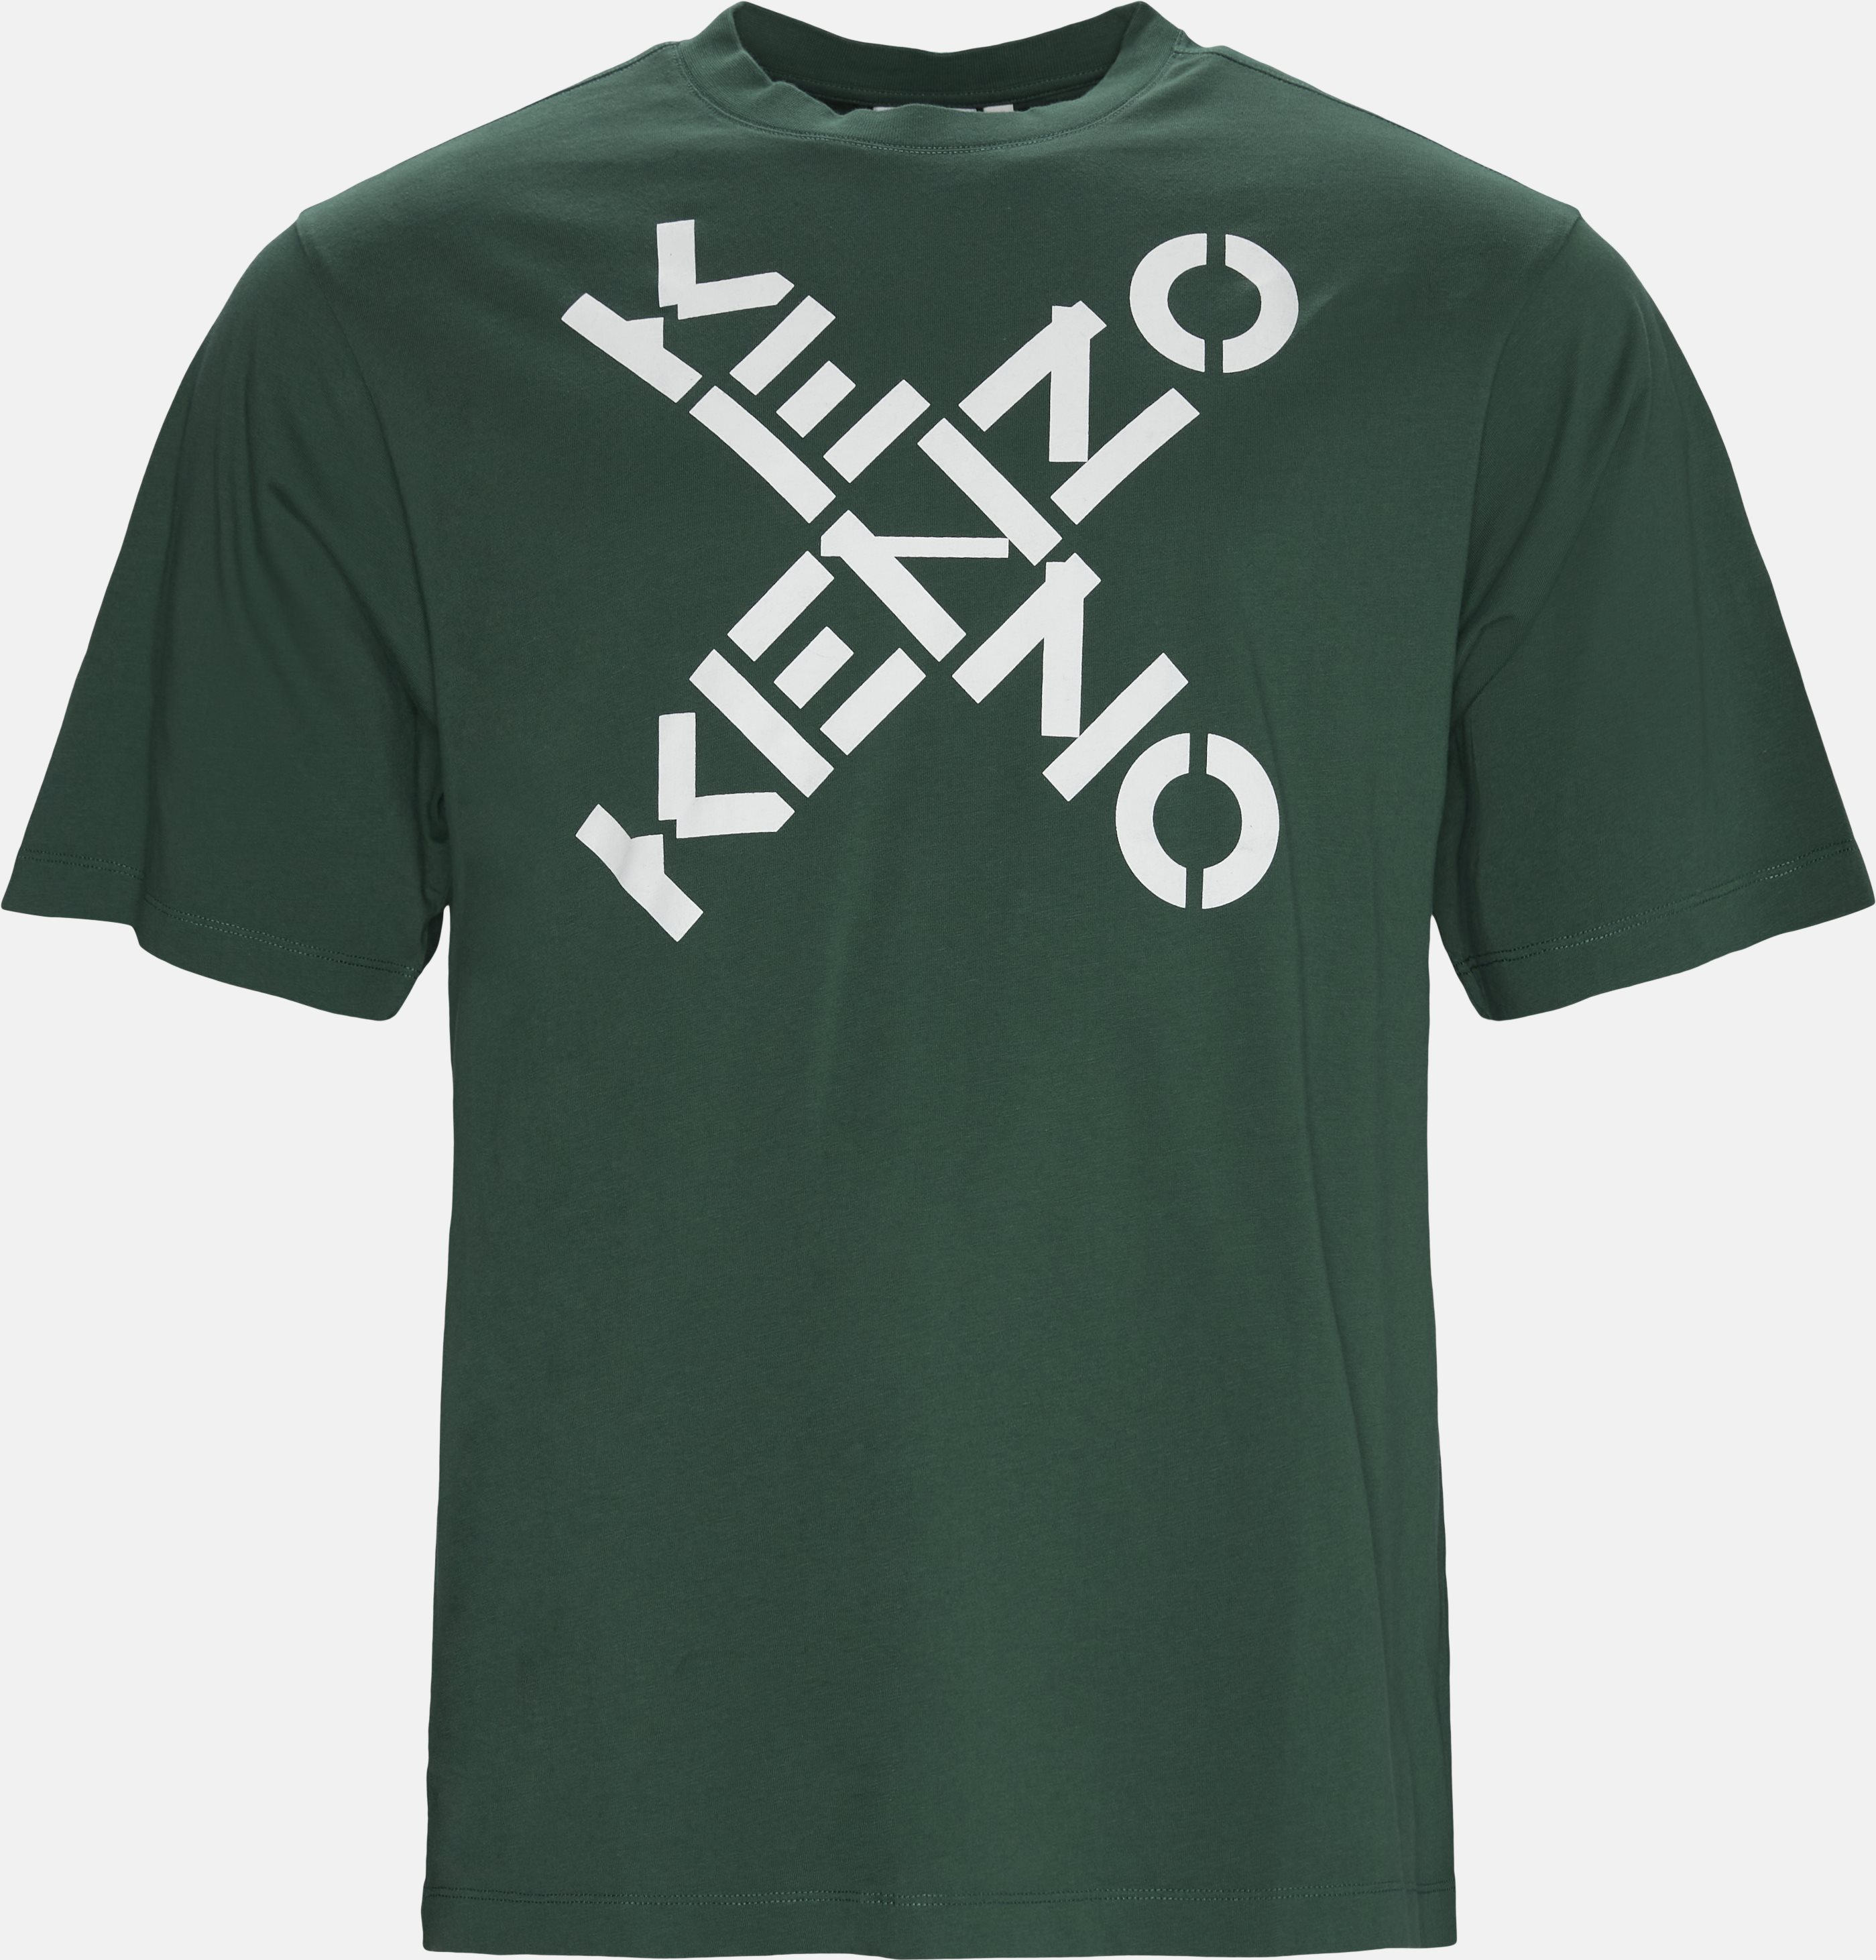 T-shirts - Regular fit - Green